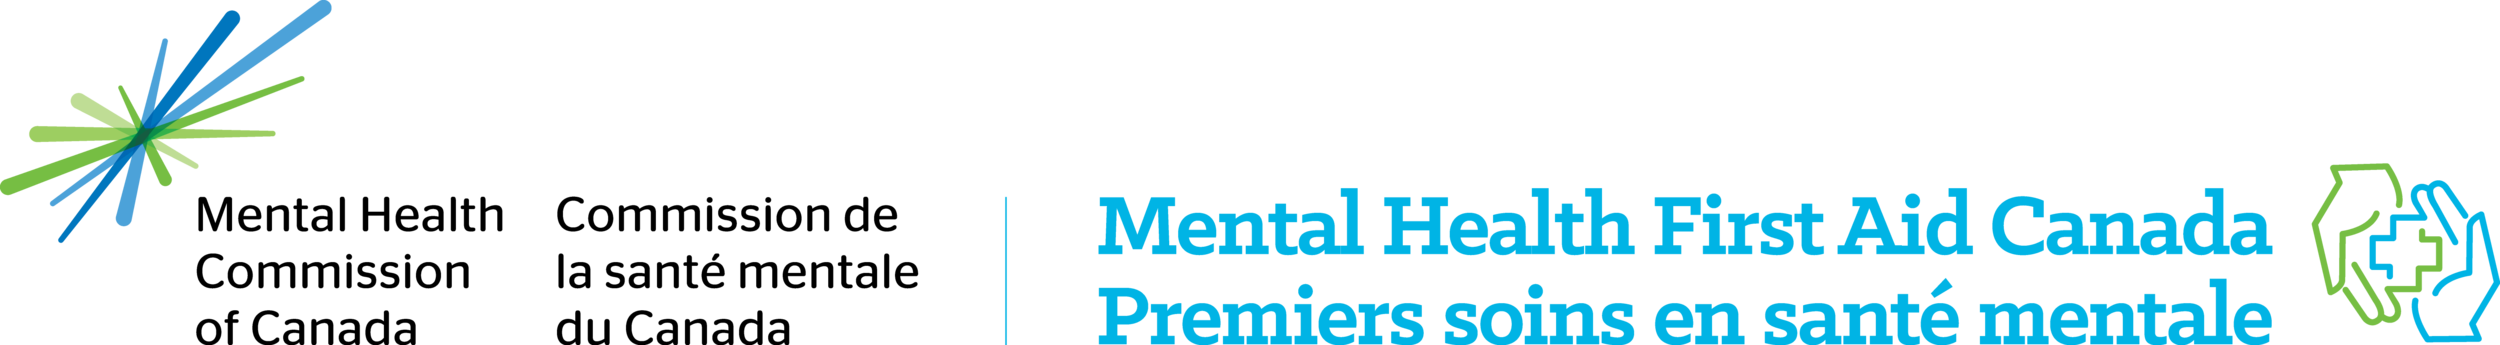 mhcc_mhfa_logo_horizontal-bilingual_colour.png